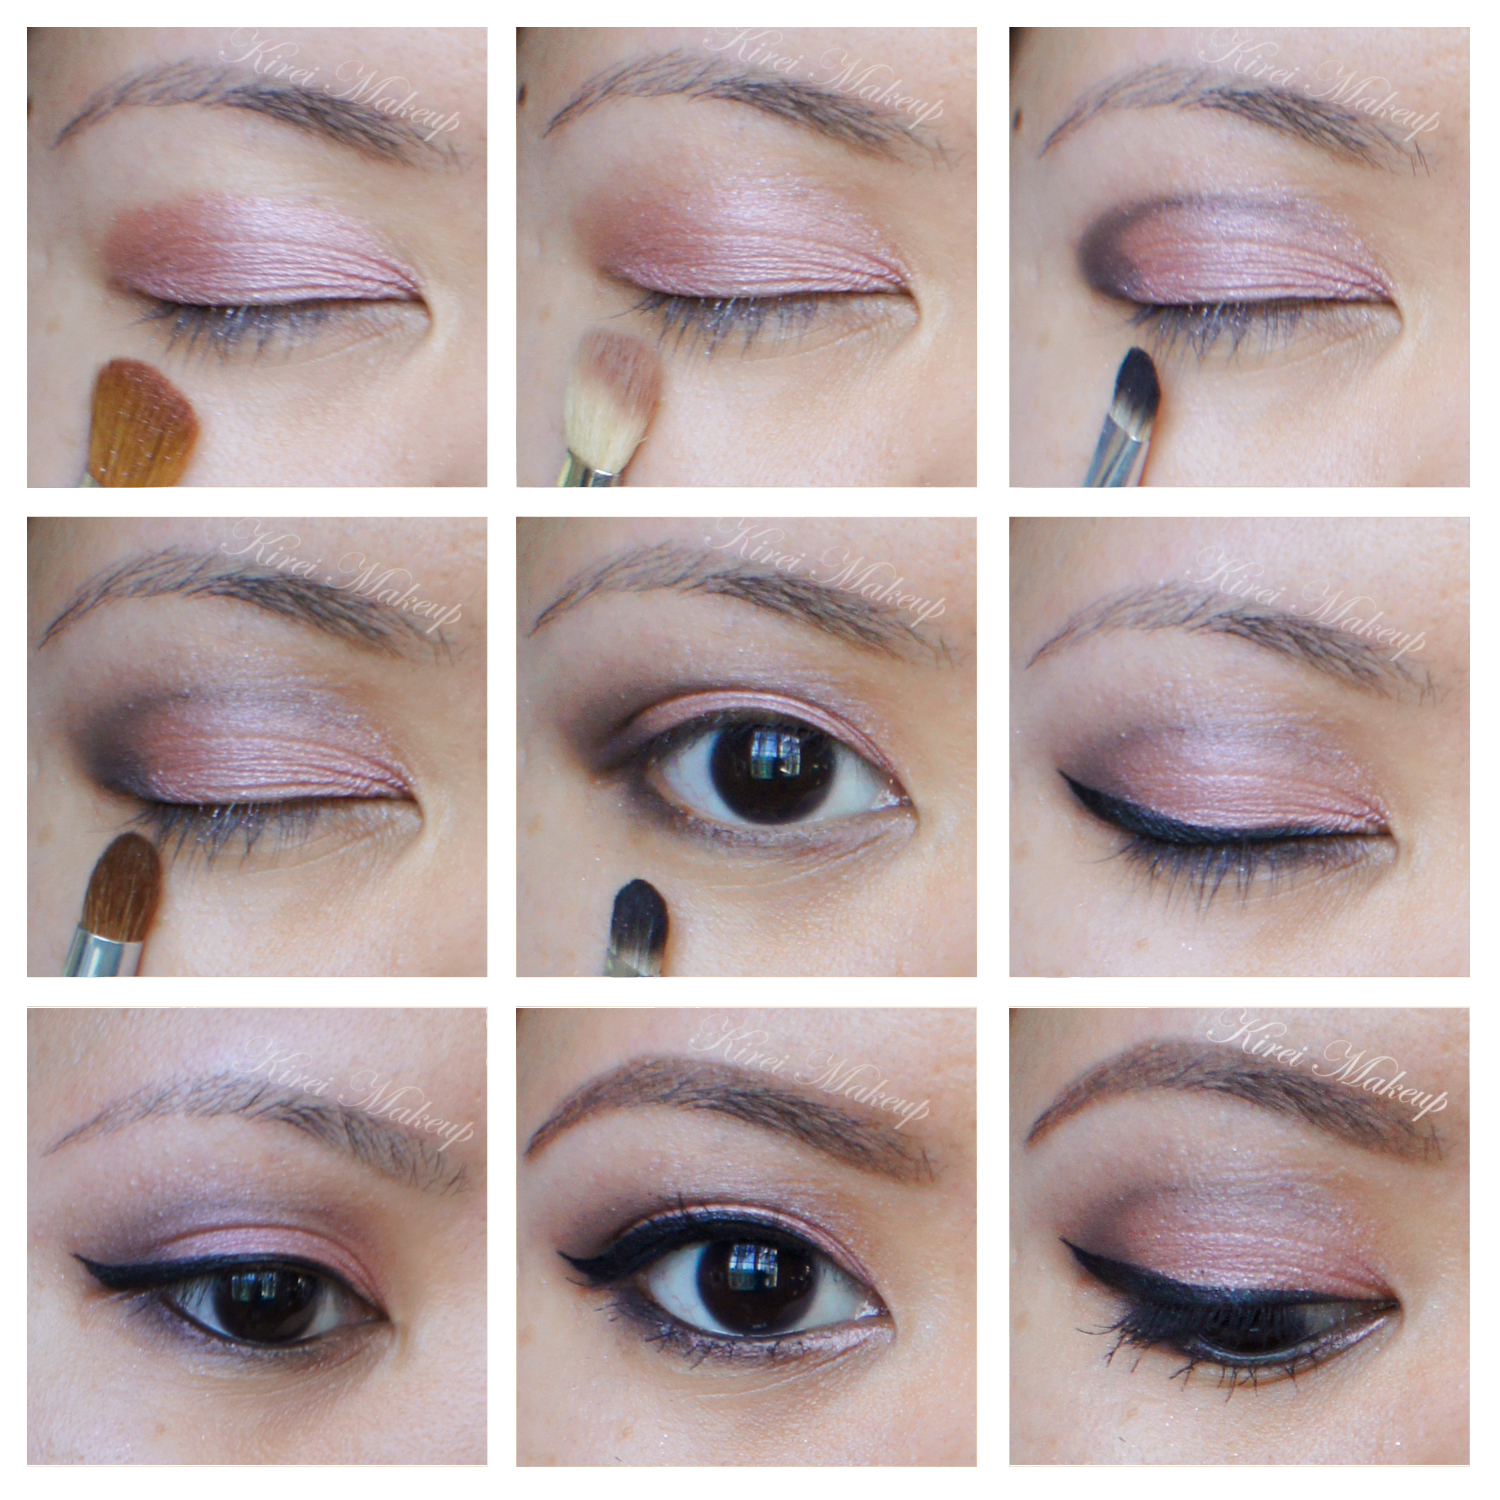 Daylight Makeup Newmakeupjdi Co